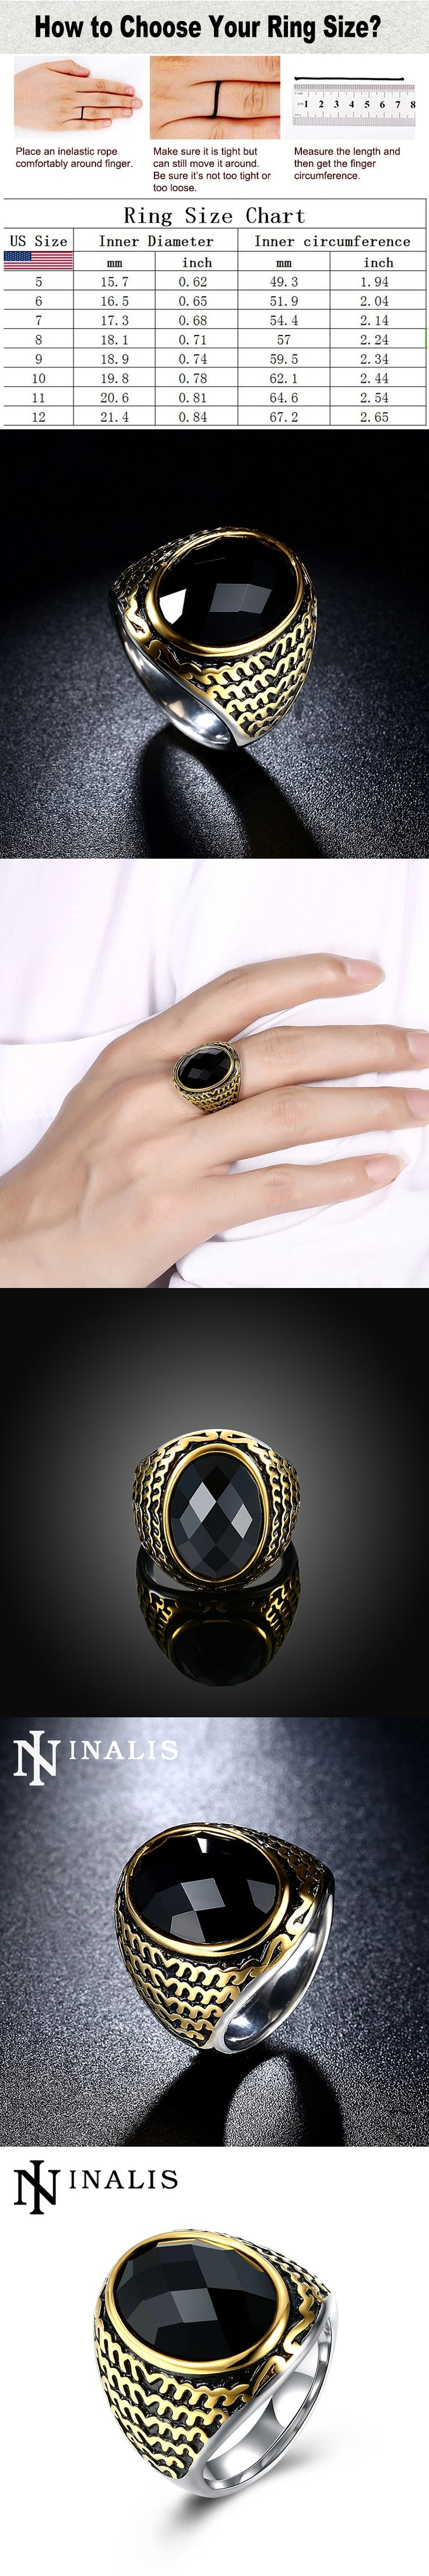 INALIS Brand Men's Signet Ring with Big Black Stone 316L Stainless Titanium Steel Islam Rings for Men Vintage Punk Biker Jewelry